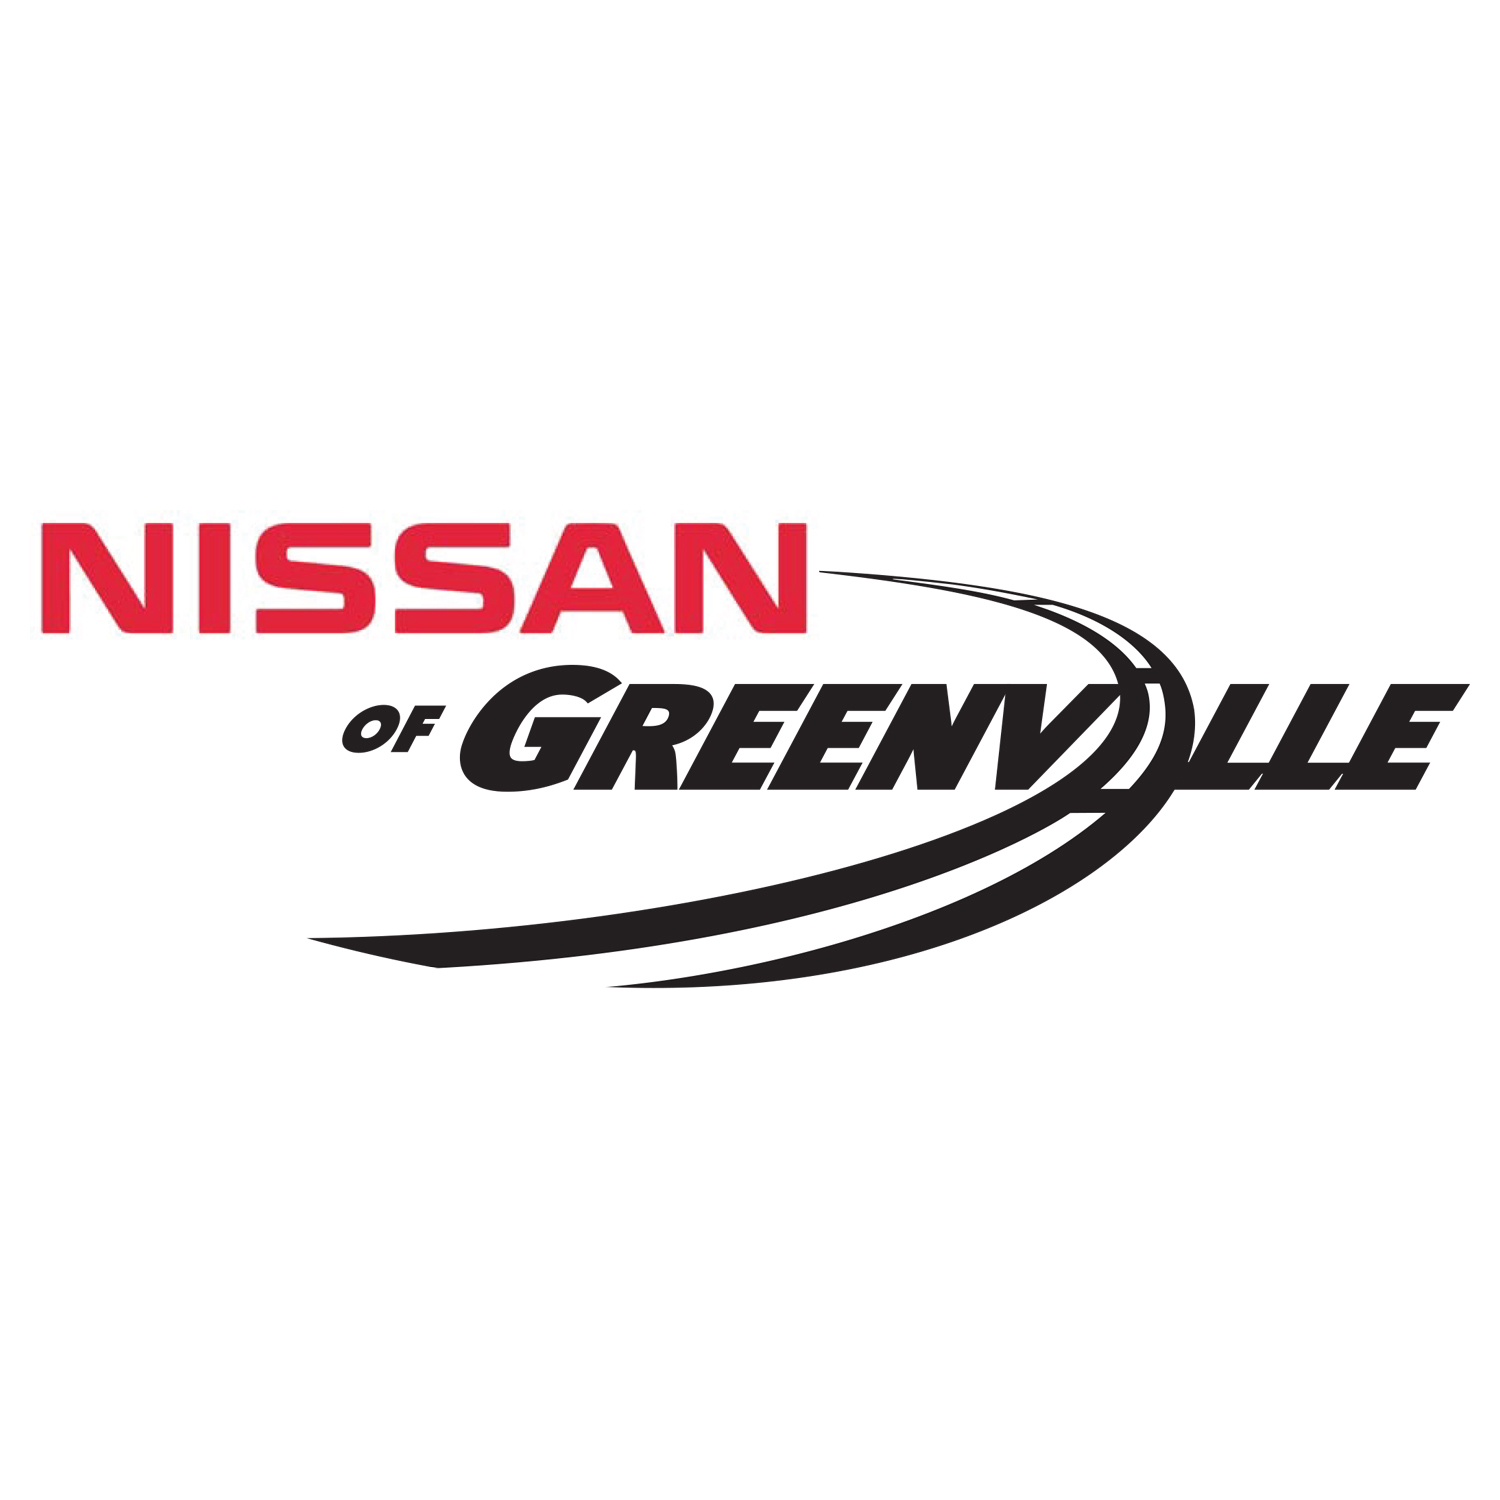 Nissan Of Greenville Coupons Near Me In Greenville